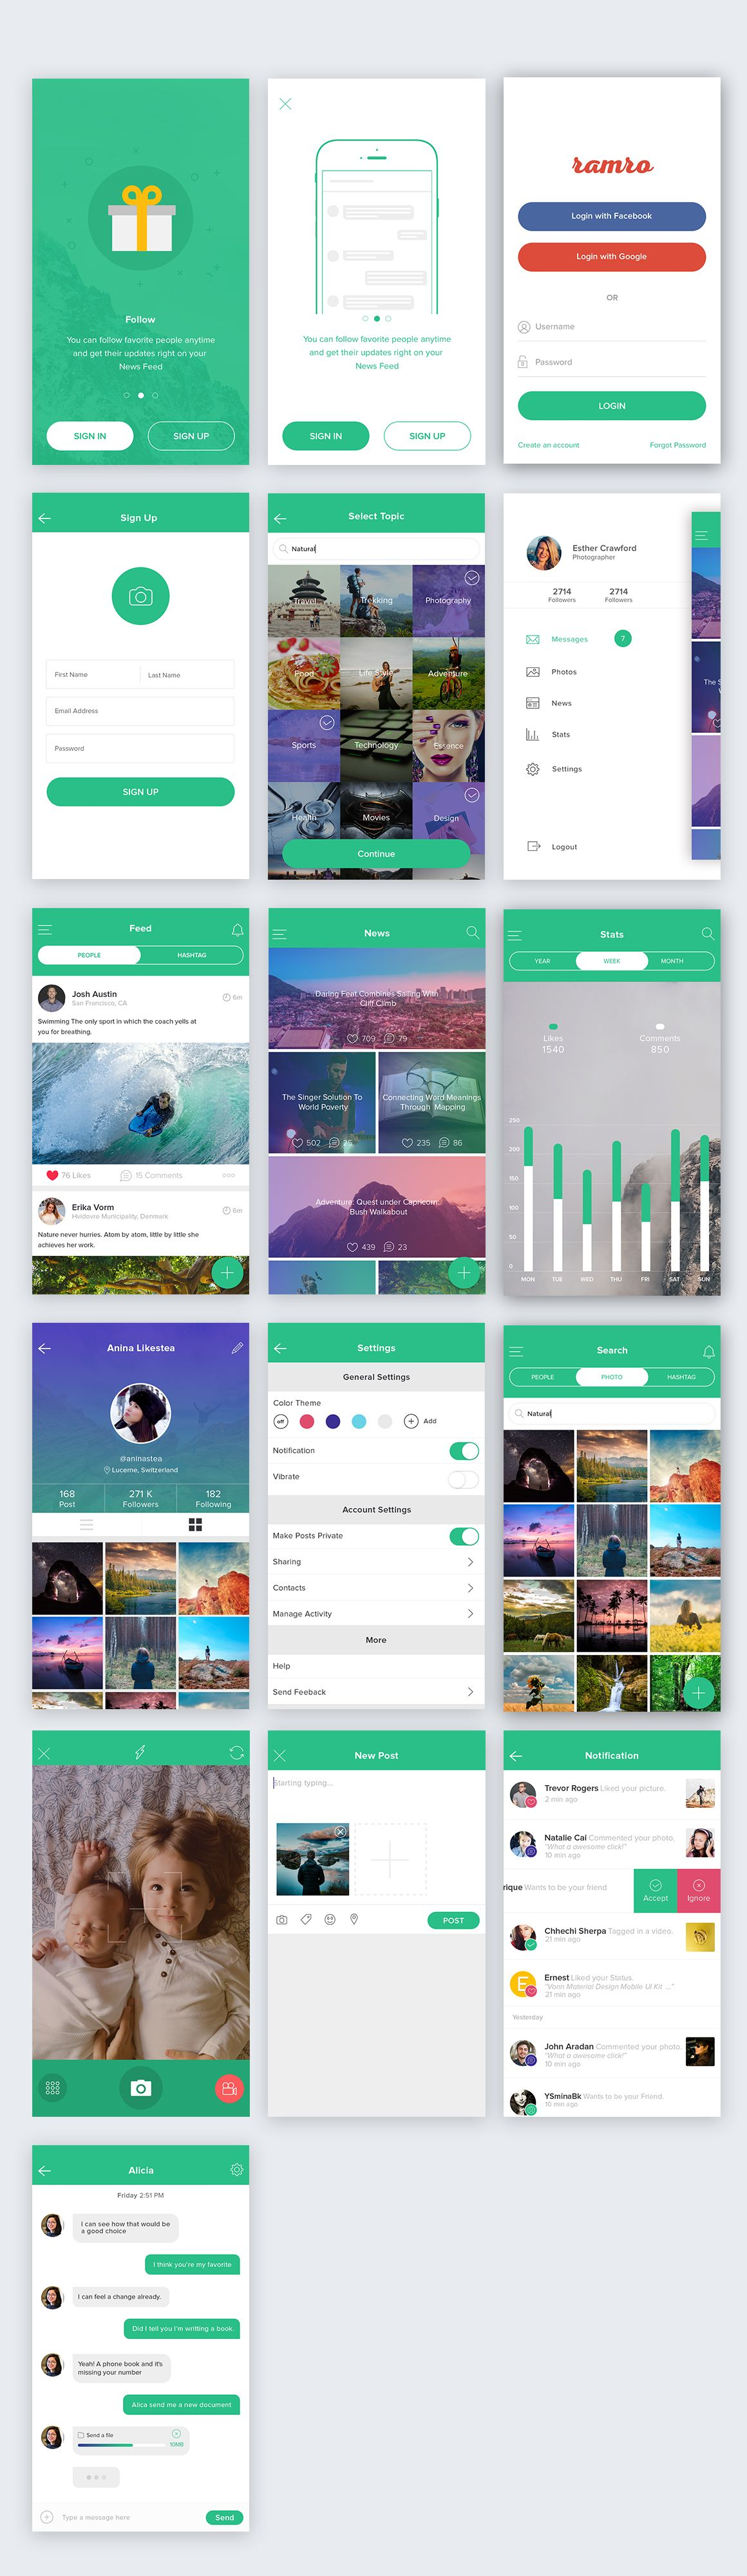 Ramro app template iOS by Danfe Designs on @creativemarket